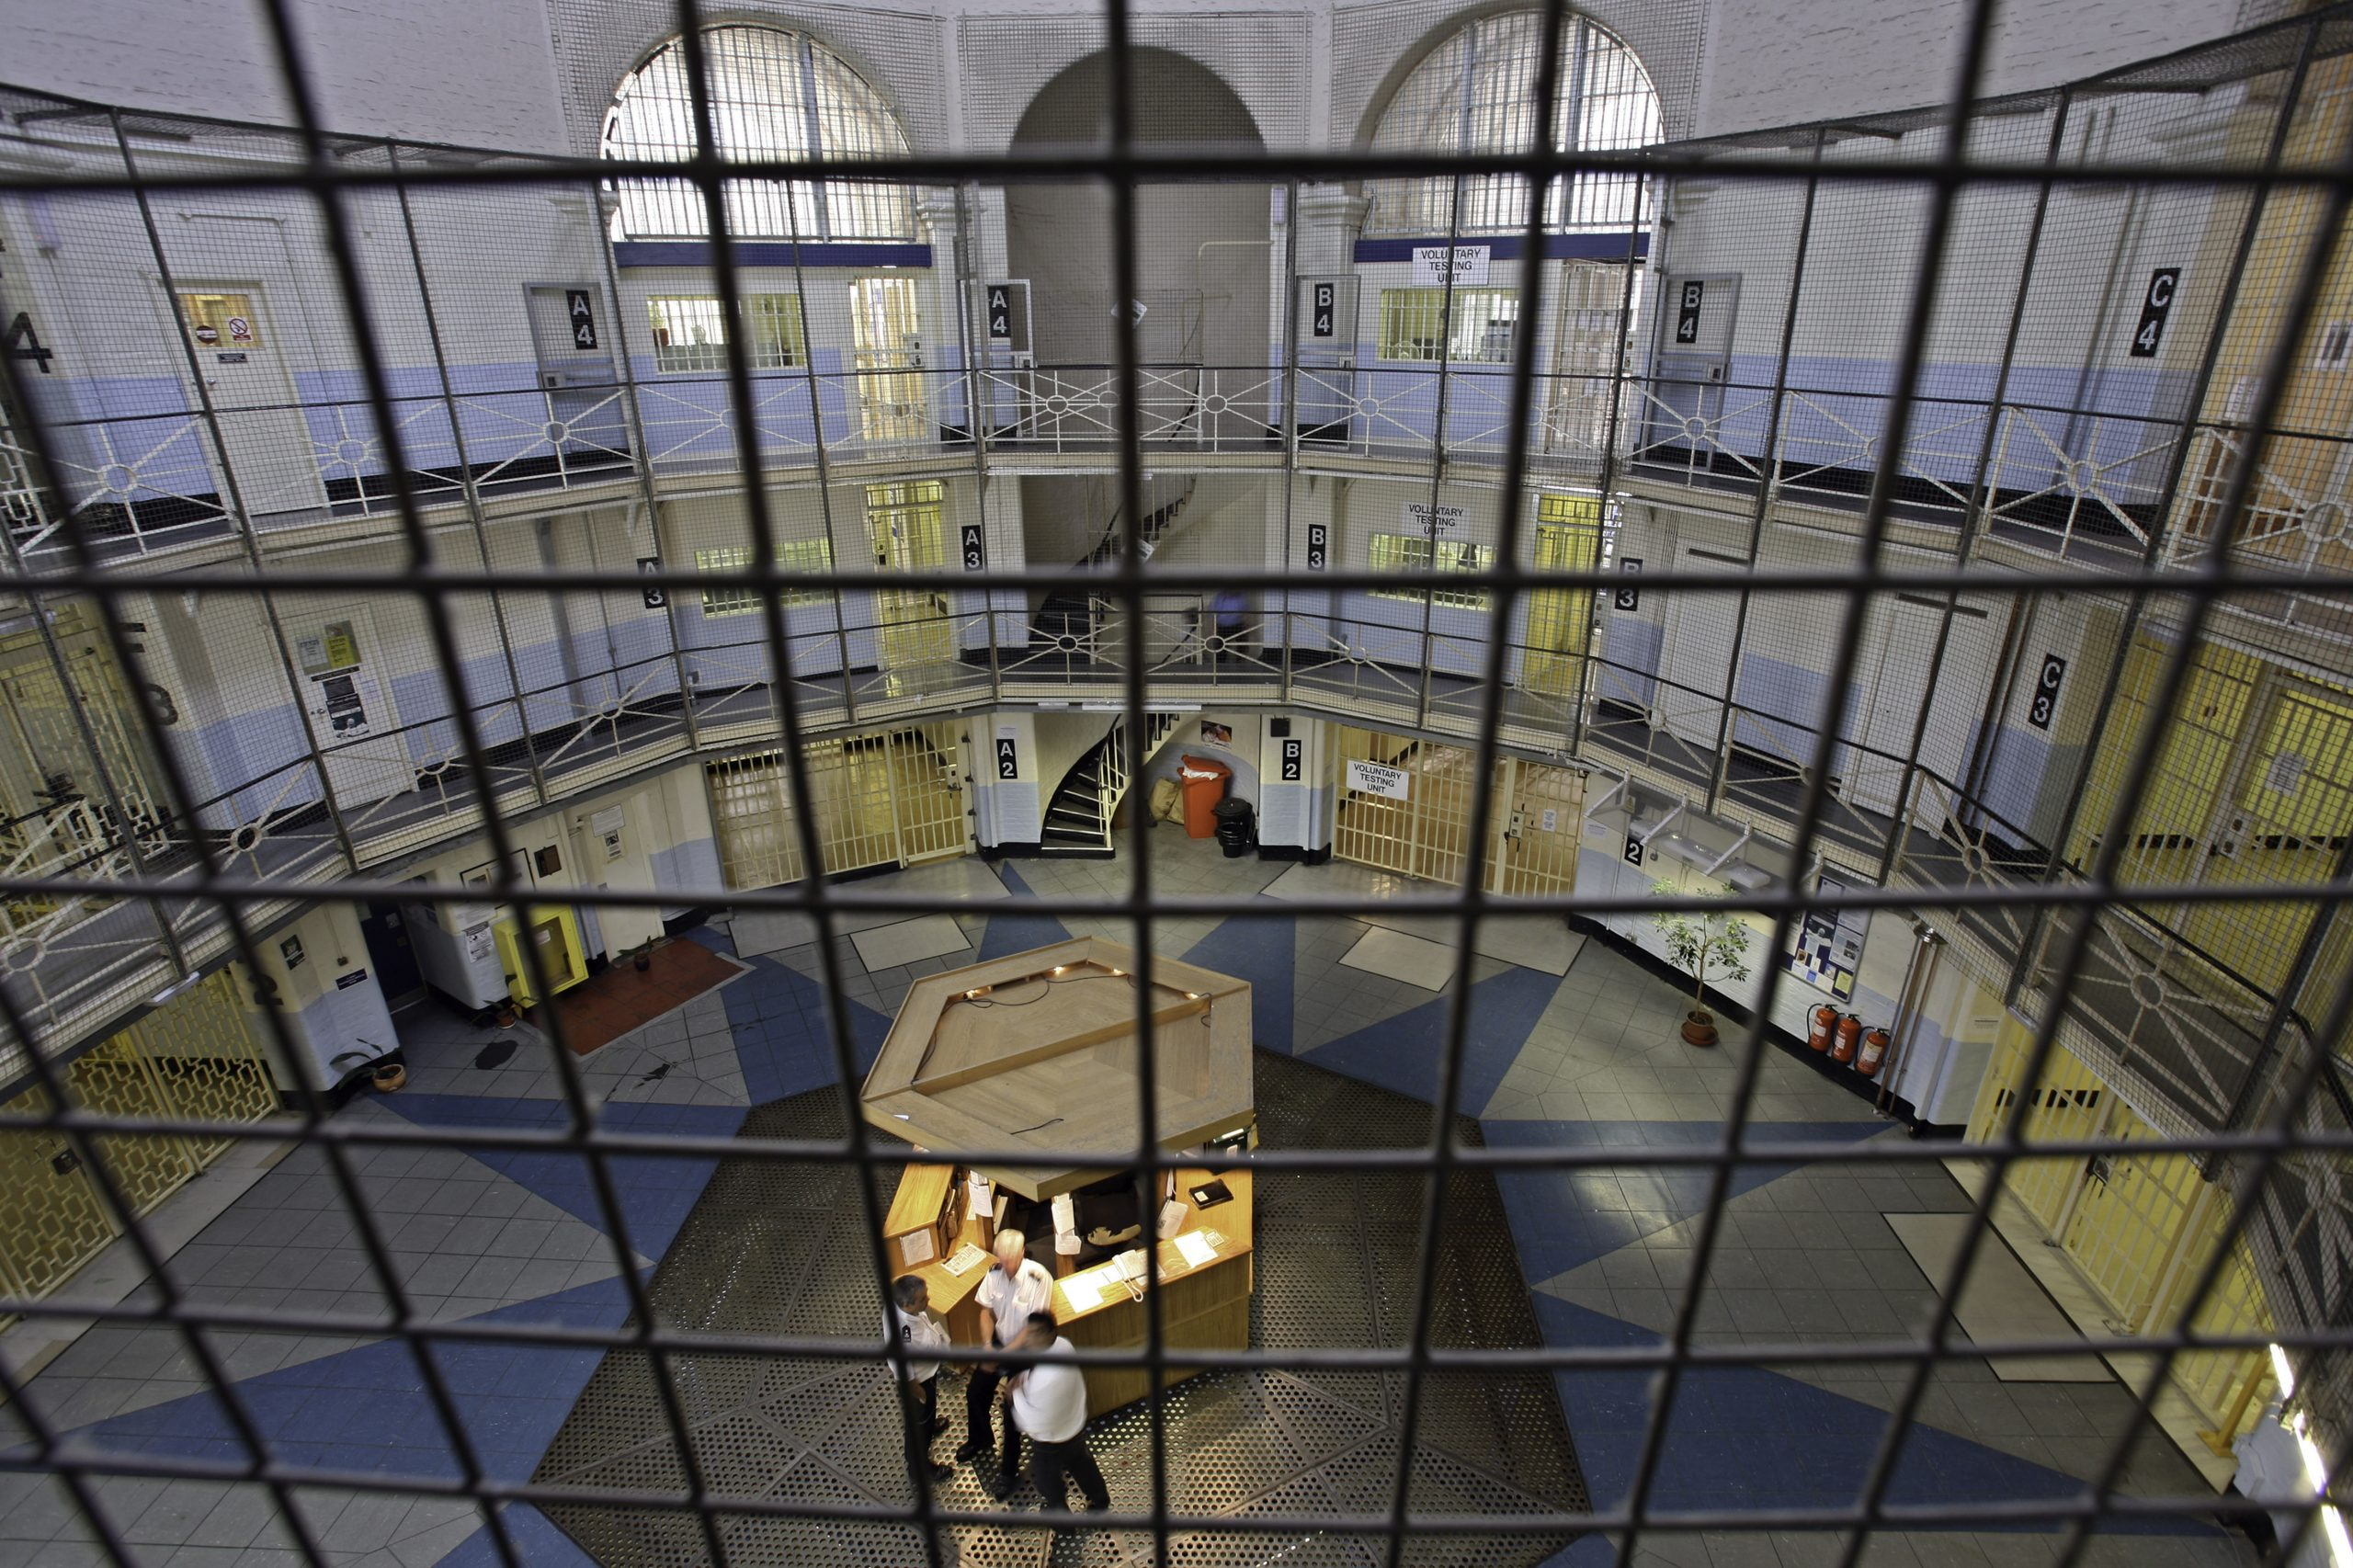 Calls to release low risk prisoners to ease pressure as COVID-19 spreads